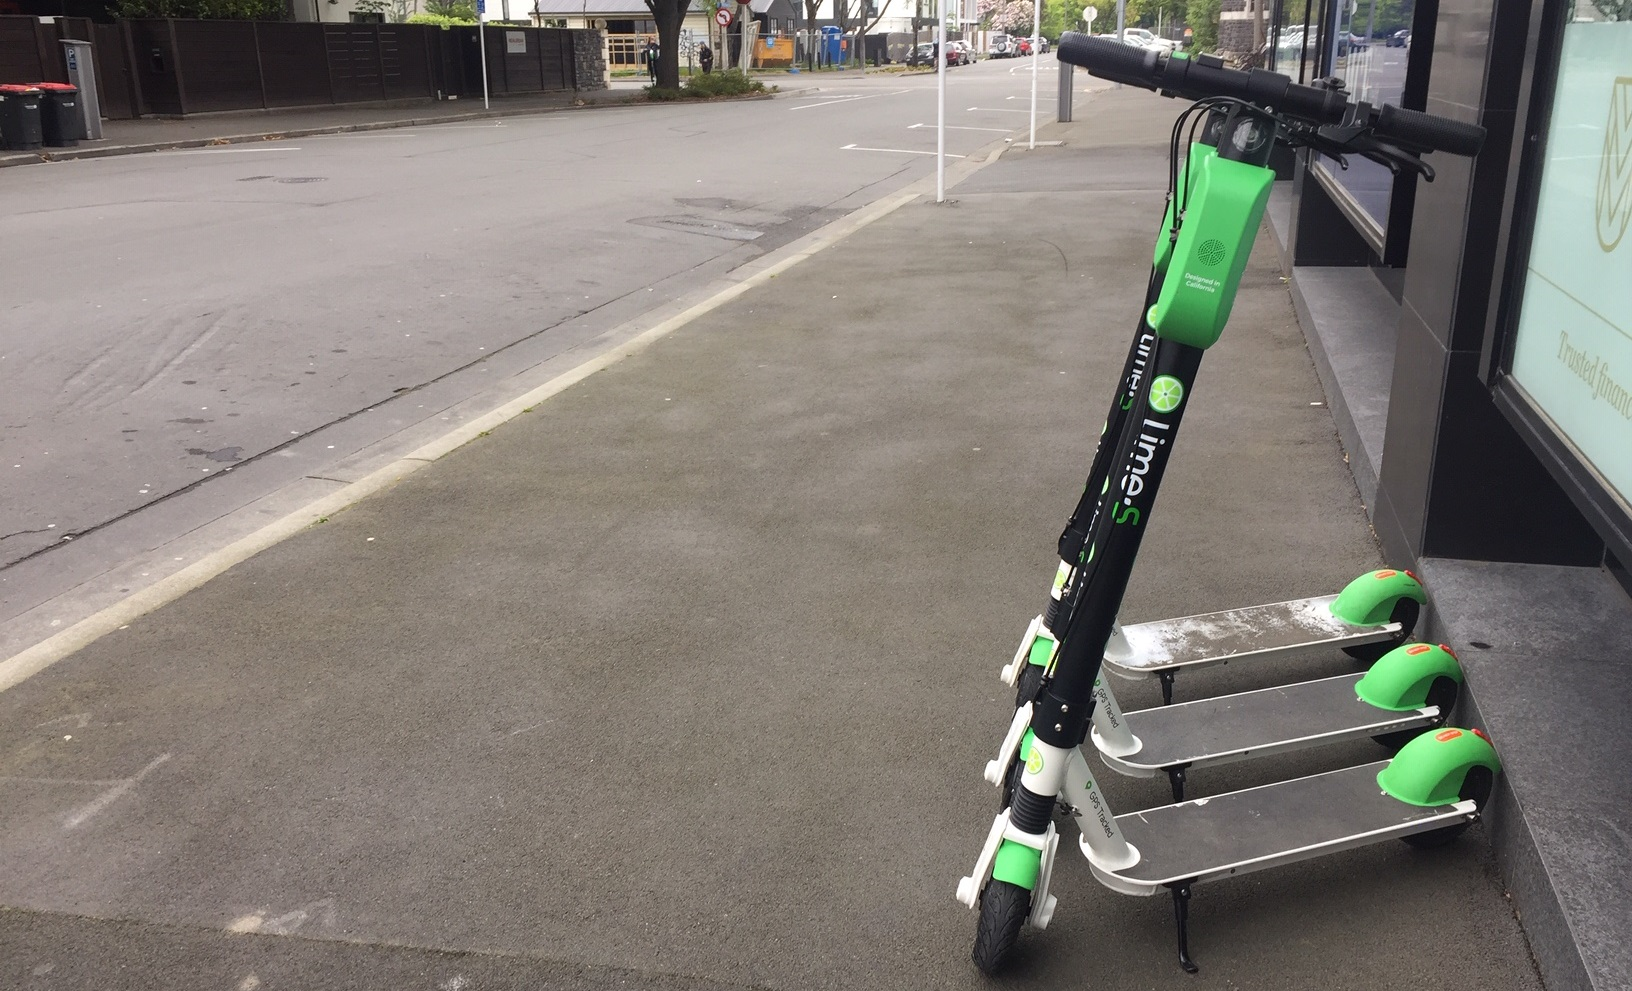 Environmentally-friendly transport initiatives in Christchurch